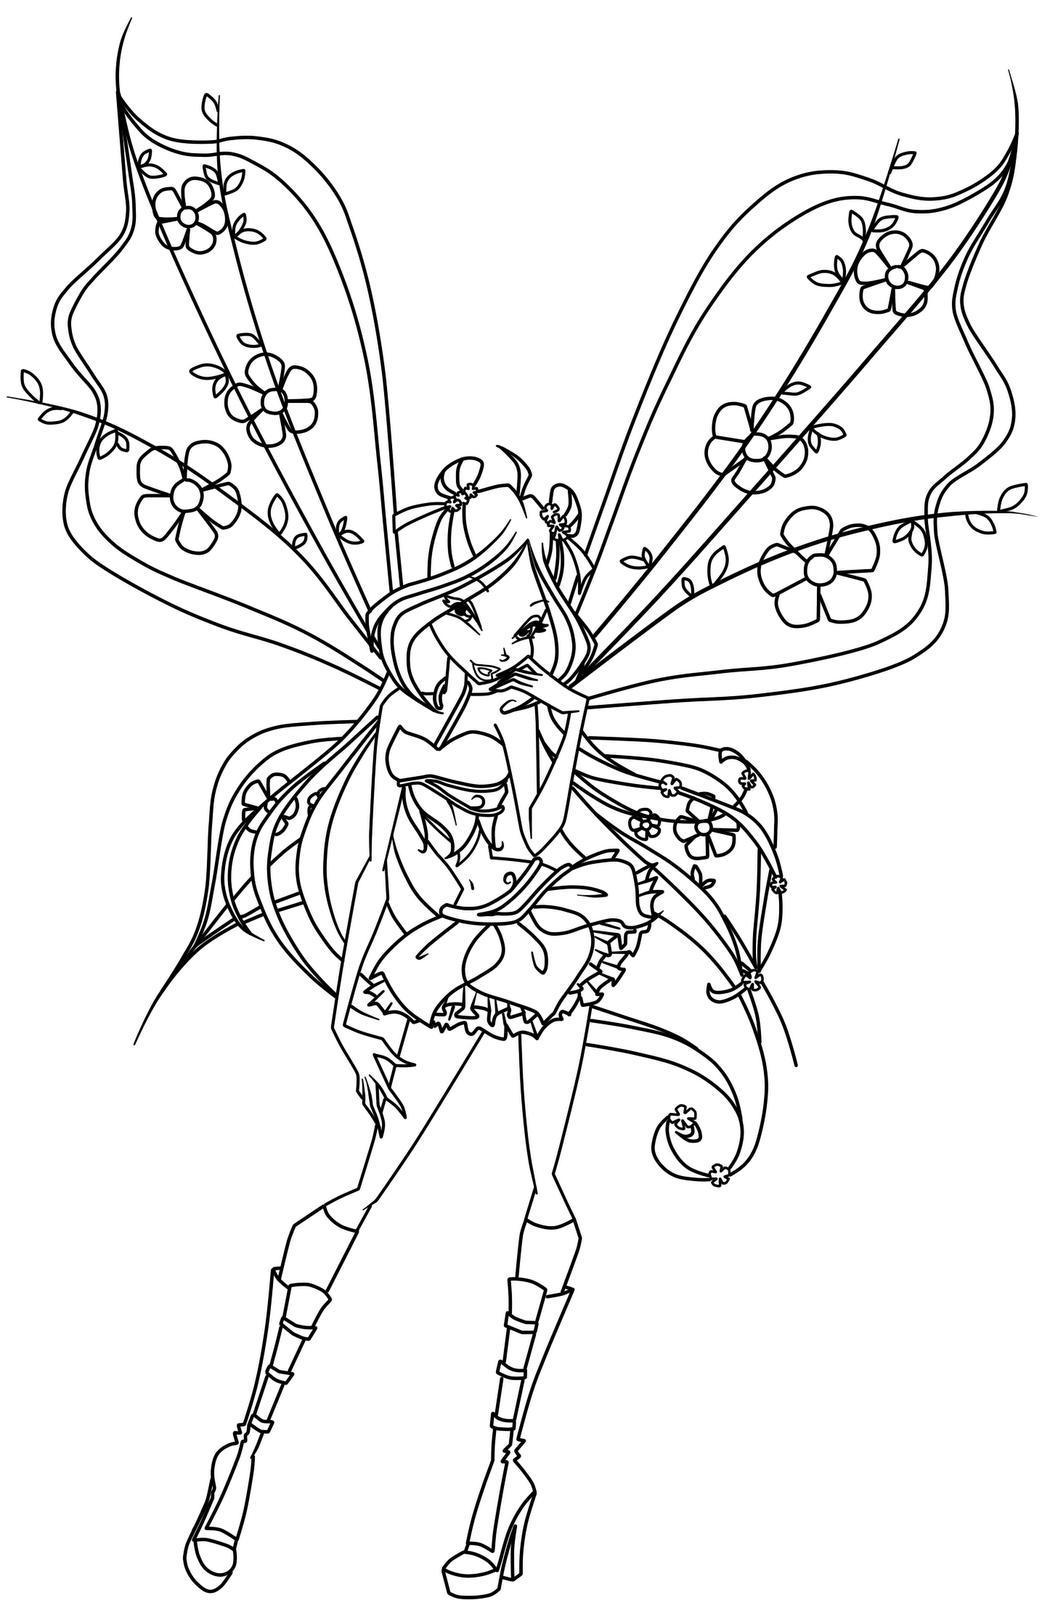 bratz fairy tale coloring pages - photo#21